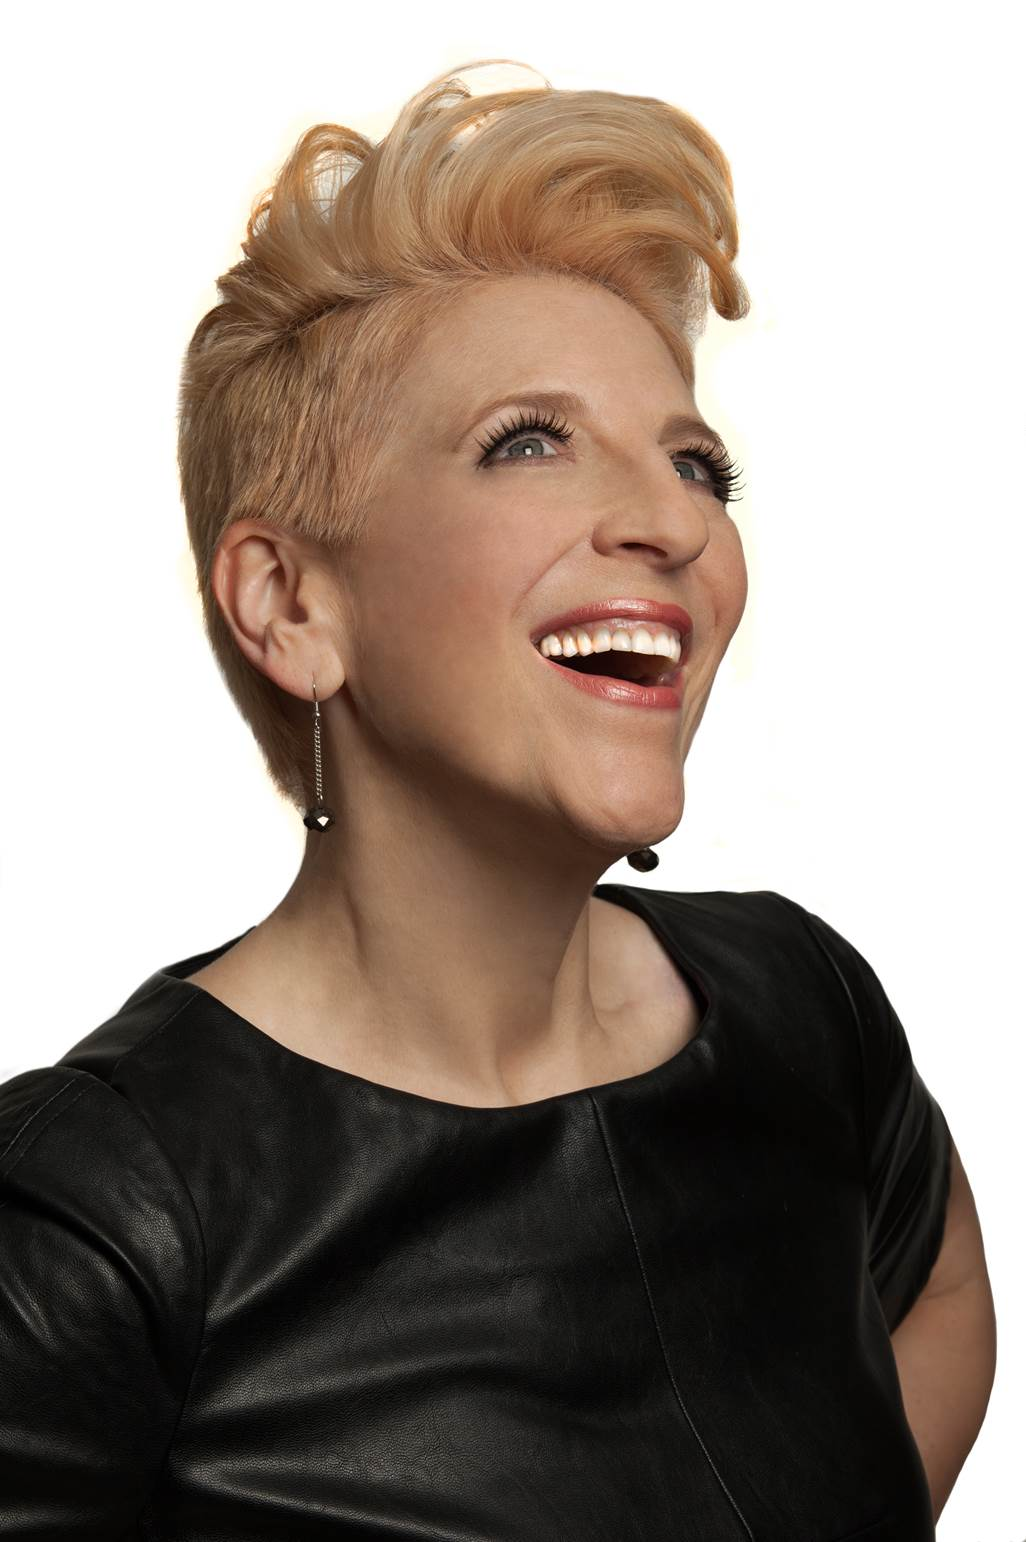 lisa lampanelli before and afterlisa lampanelli wikipedia, lisa lampanelli donald trump, lisa lampanelli roast jokes, lisa lampanelli, lisa lampanelli lose weight, lisa lampanelli youtube, lisa lampanelli 2015, lisa lampanelli wiki, lisa lampanelli boyfriend, lisa lampanelli take it like a man, lisa lampanelli calgary, lisa lampanelli tour, lisa lampanelli weight loss, lisa lampanelli roast, lisa lampanelli net worth, lisa lampanelli tickets, lisa lampanelli stand up, lisa lampanelli divorce, lisa lampanelli before and after, lisa lampanelli back to the drawing board